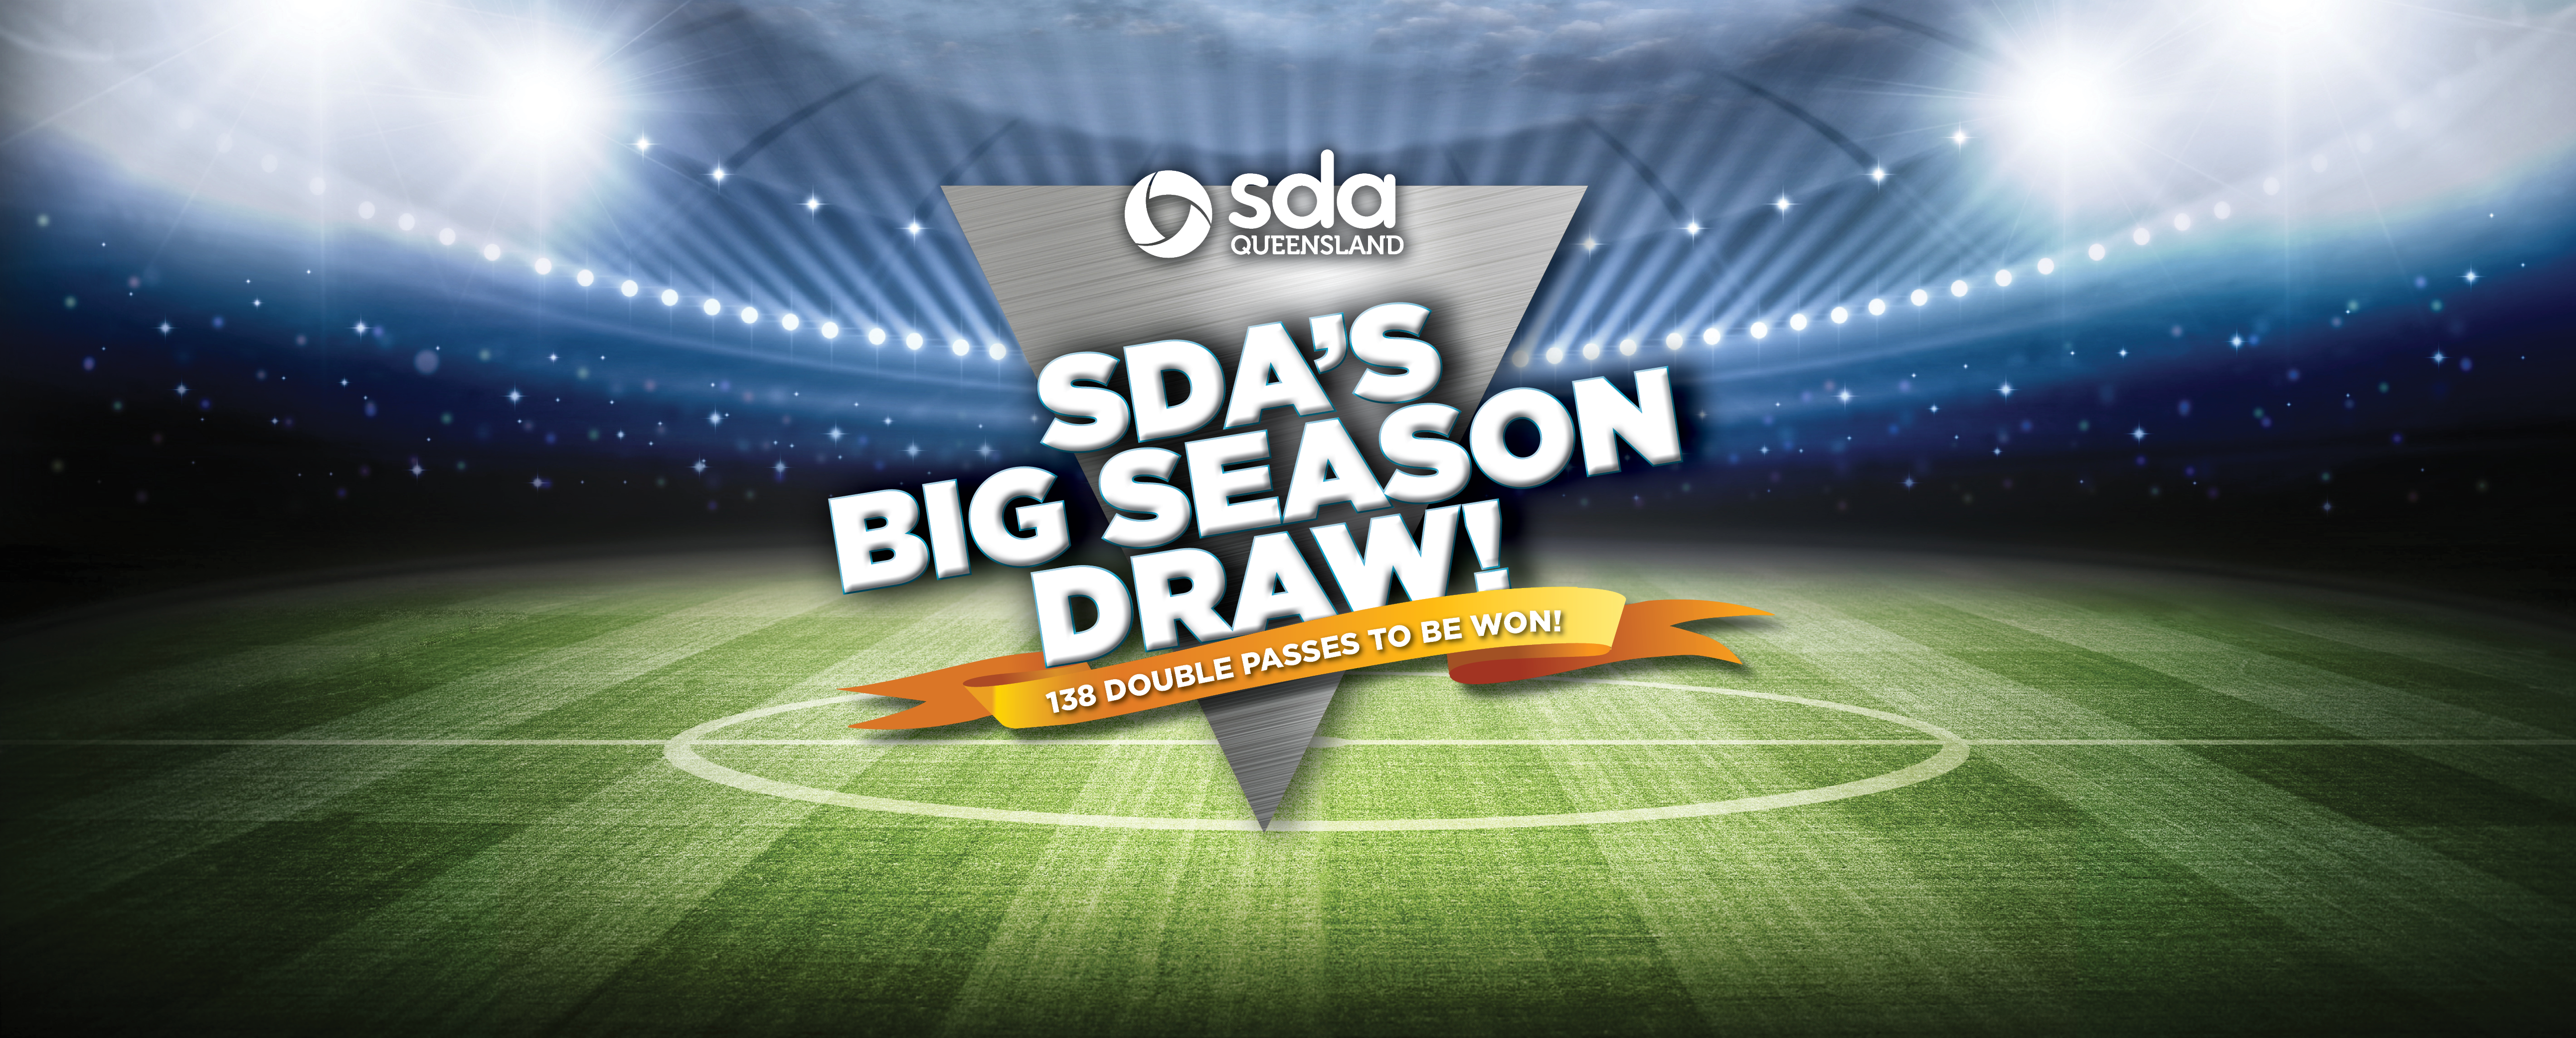 SDA members can win tickets to the Broncos, Titans, Lions or Firebirds